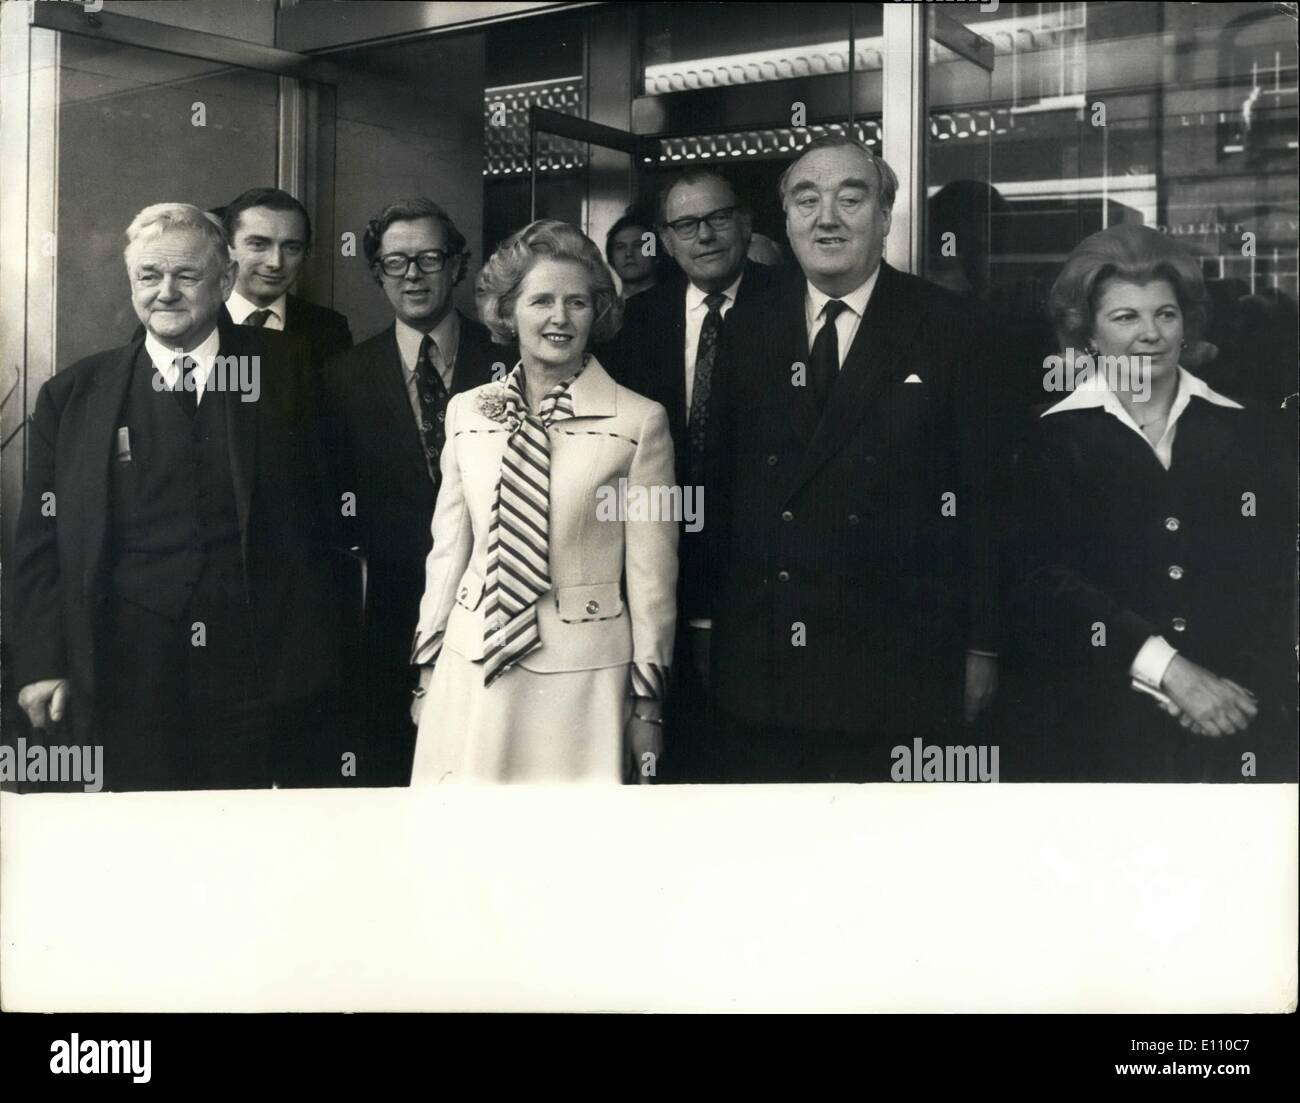 Feb. 02, 1975 - Mrs. Thatcher acclaimed as leader of the Tories. Man leading Tories attended a mass meeting at the European hotel in London today, to confirm and acclaim Mrs. Margaret Thatcher as their national leader. Photo shows Mrs. Margaret Thatcher pictured at the Europa Hotel today with members of her shadow Cabinet. L to R Lord Hailsham Norman Fowler , Sir Geoffrey Howe, Mrs. Thatcher Reginald Maudling , William Whitelaw and Mrs. Sally Oppenheim. - Stock Image